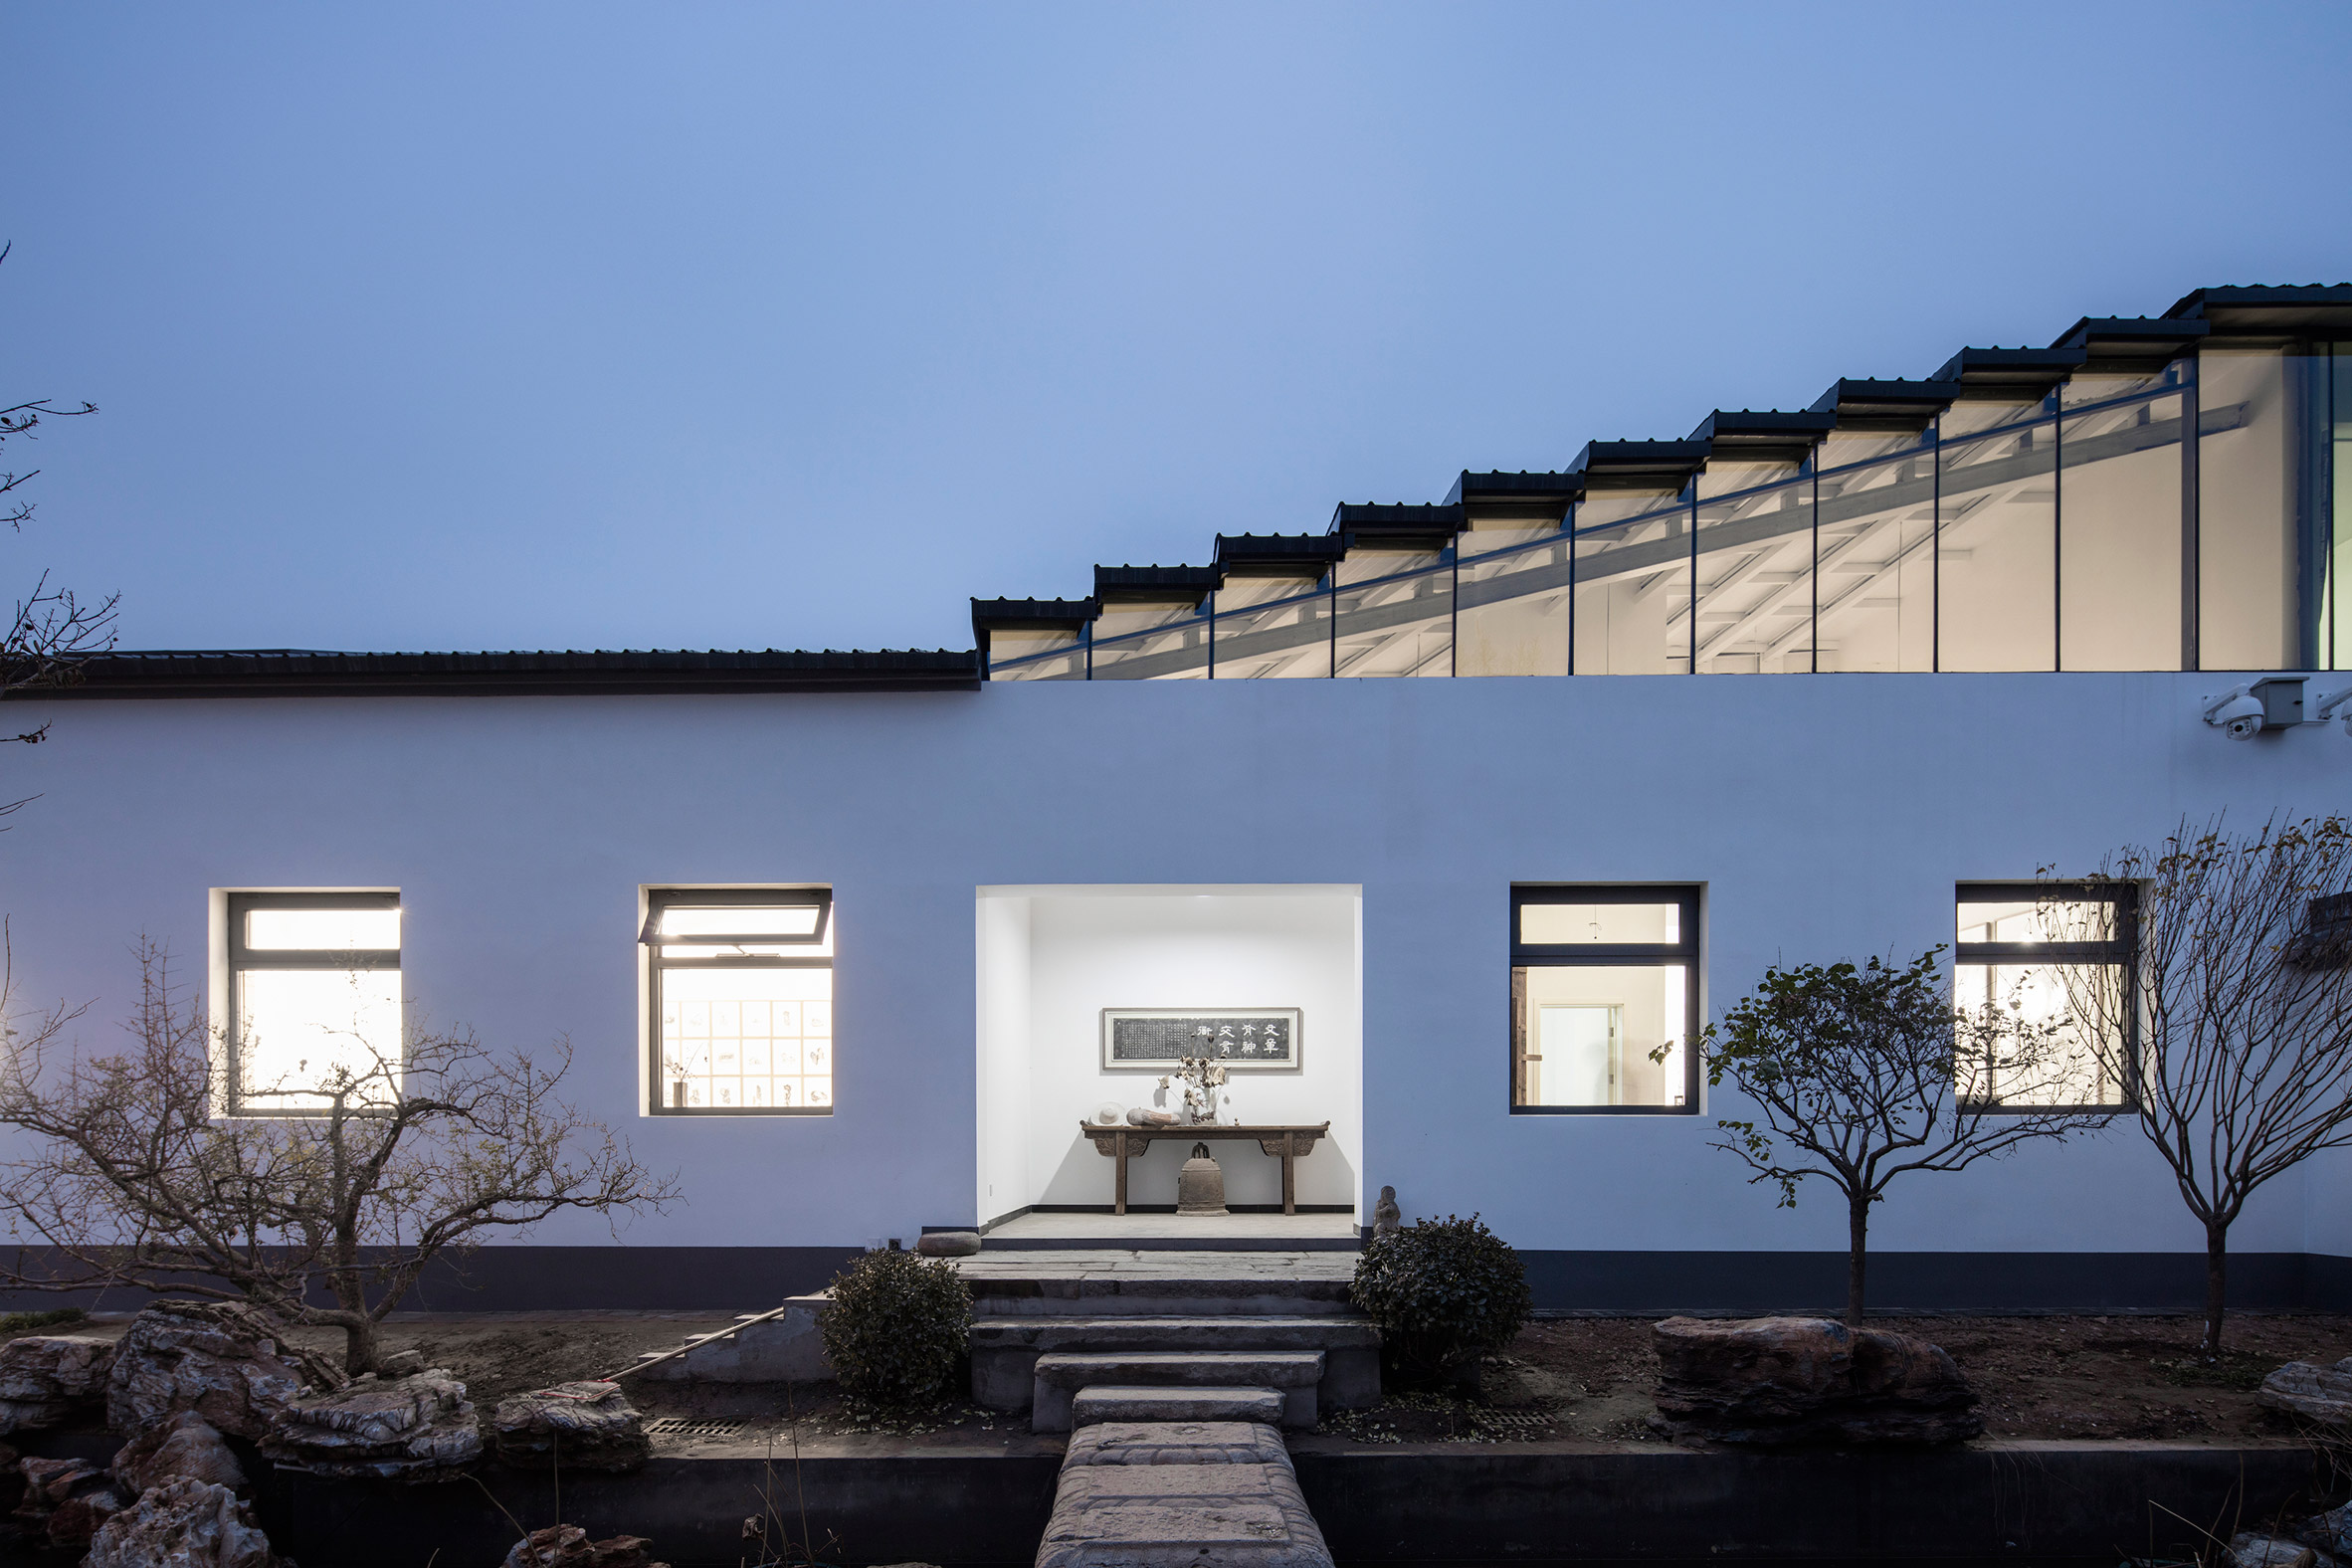 Office Project Architects turn Beijing Factory into a Home Studio home studio Office Project Architects turn Beijing Factory into a Home Studio Office Project Architects turn Beijing Factory into a Home Studio 3